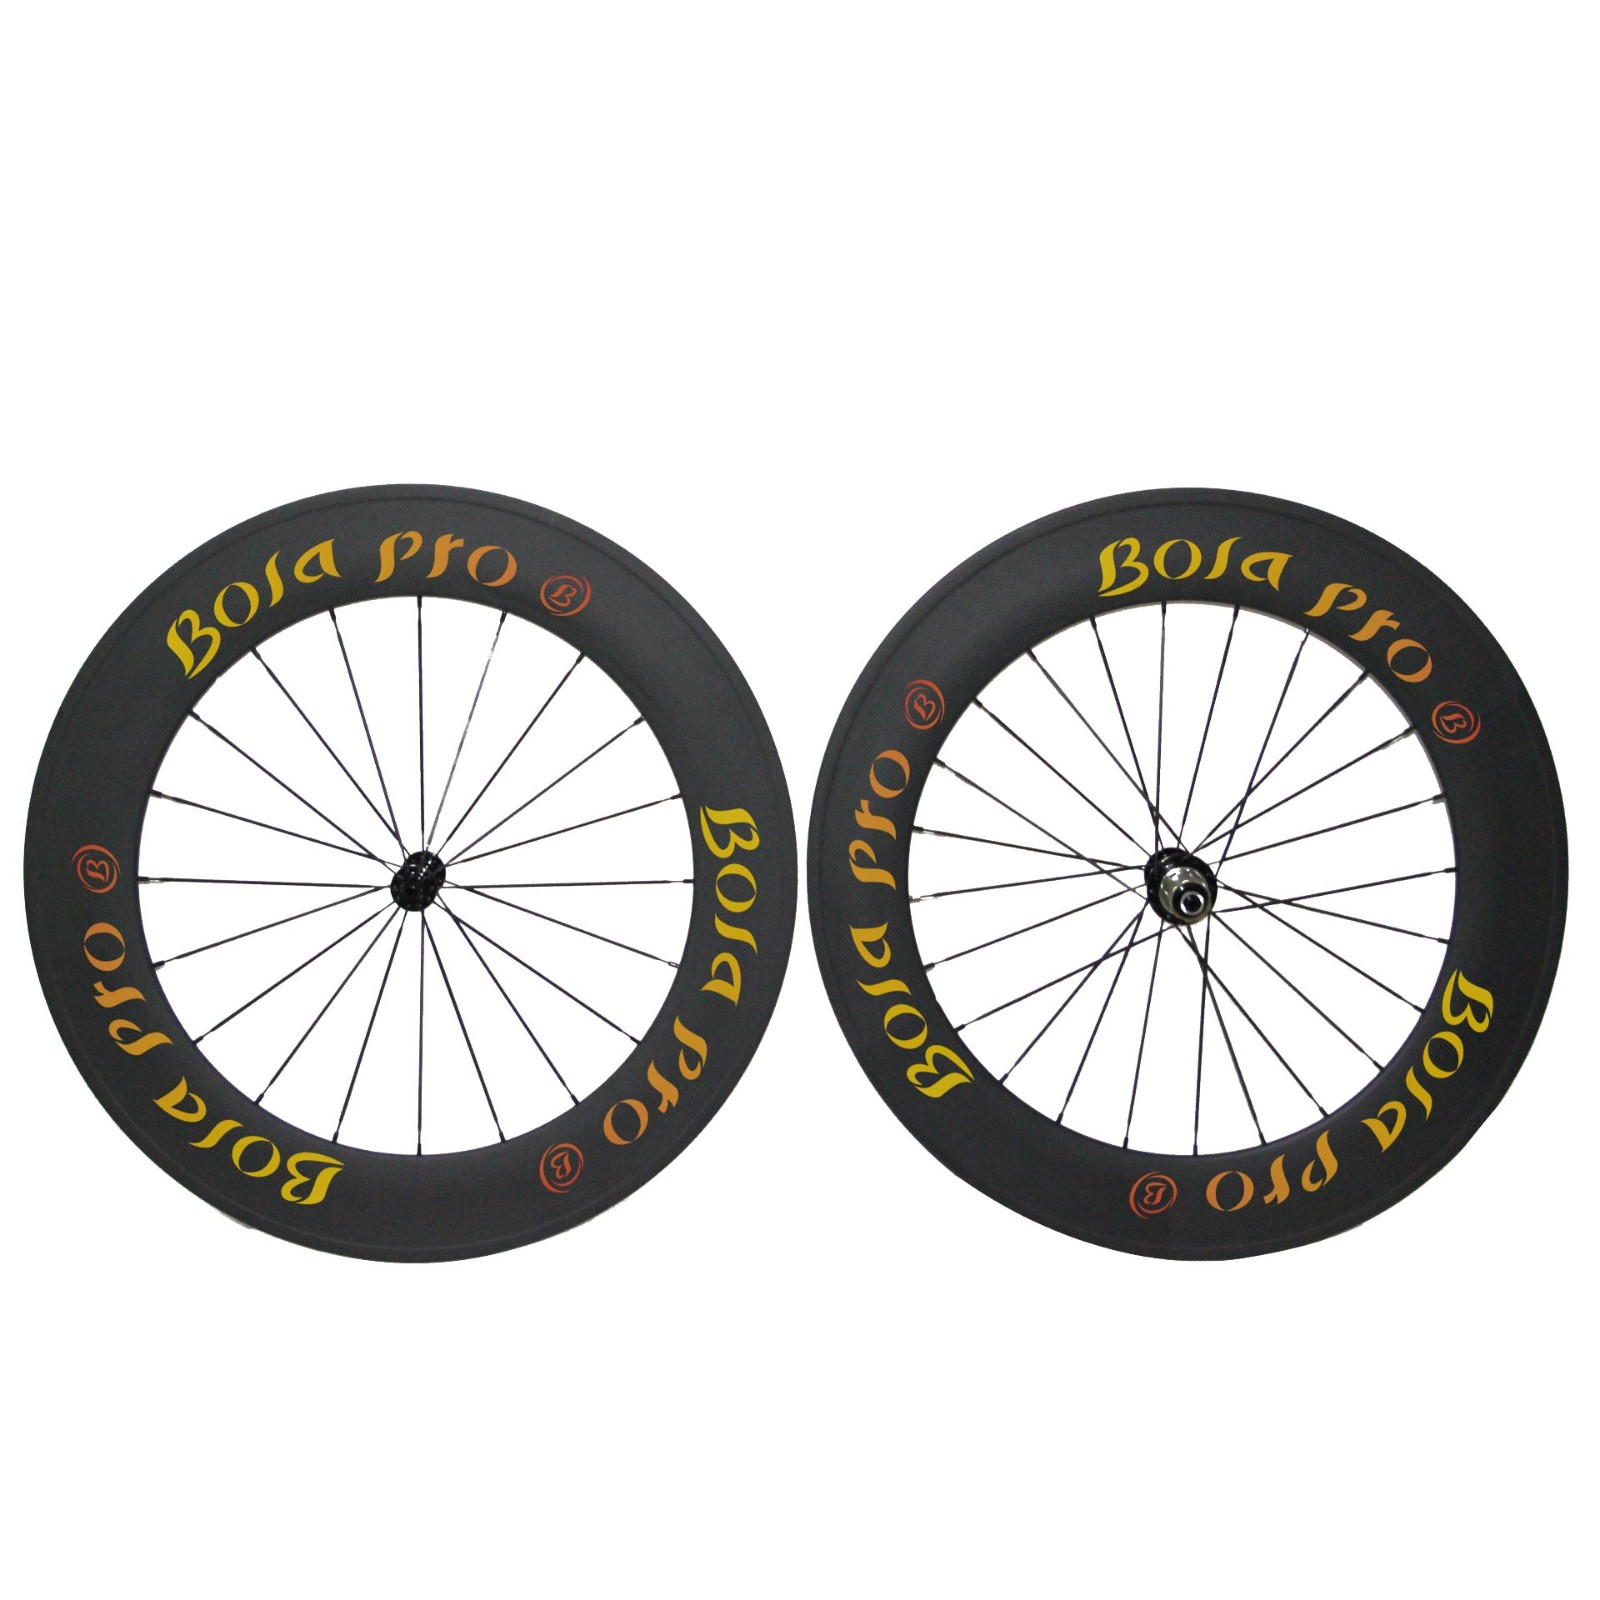 700C 88mm carbon wheelset with Powerway R13